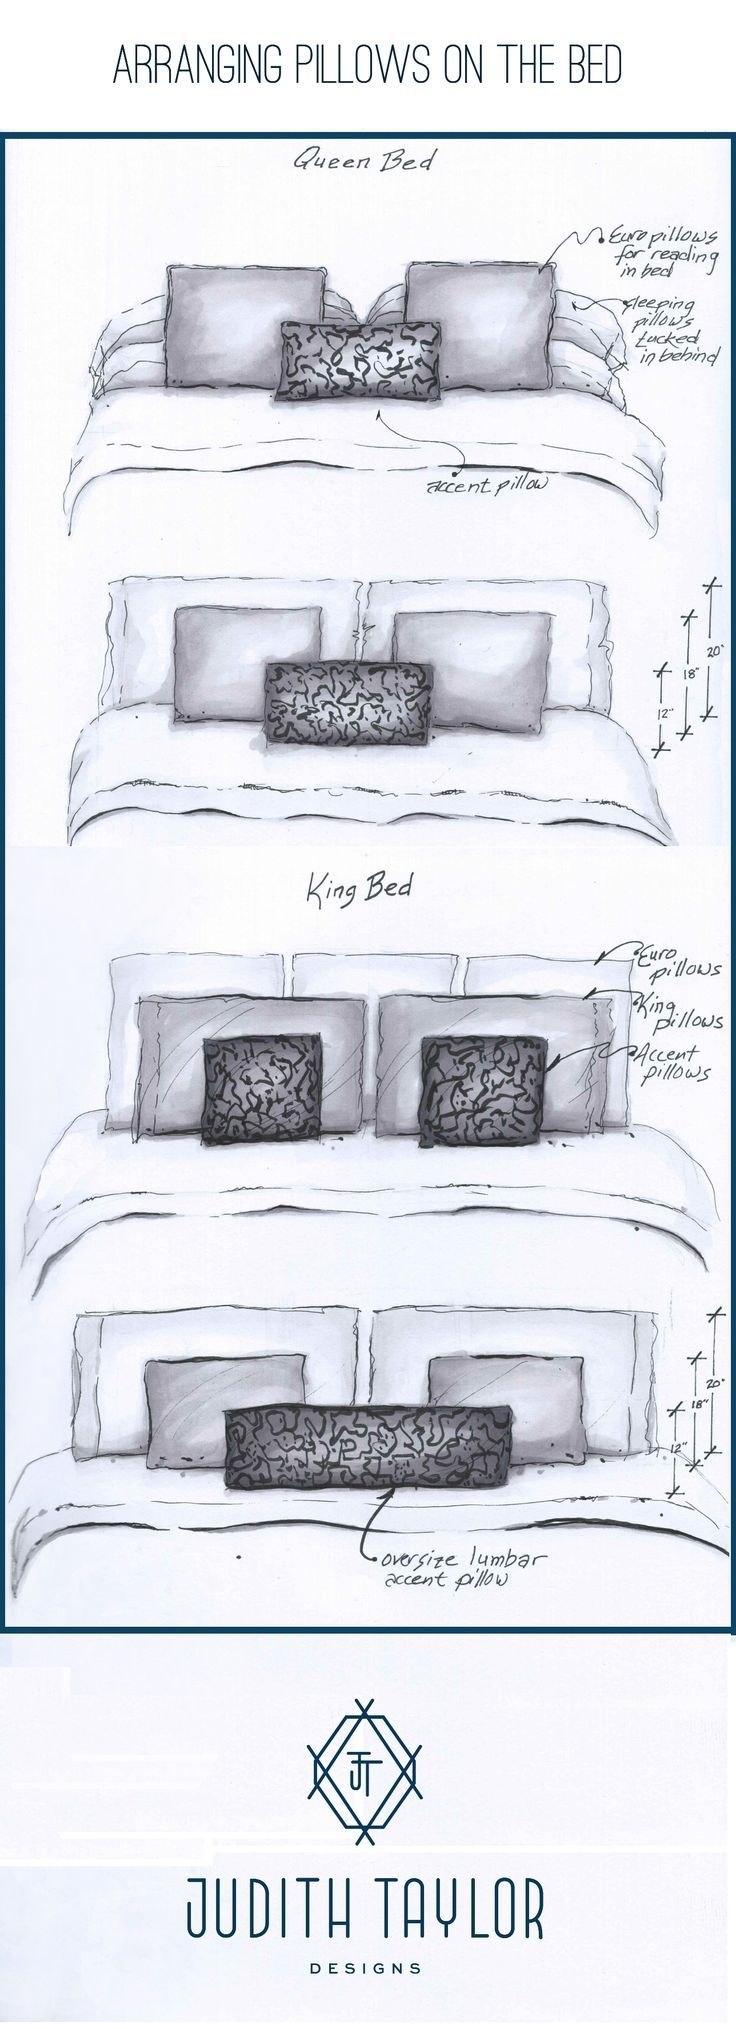 "Arrangement and sizing for pillows on Queen and King bed. <a href=""http://www.judithtaylordesigns.com"" rel=""nofollow"" target=""_blank"">www.judithtaylord...</a>"